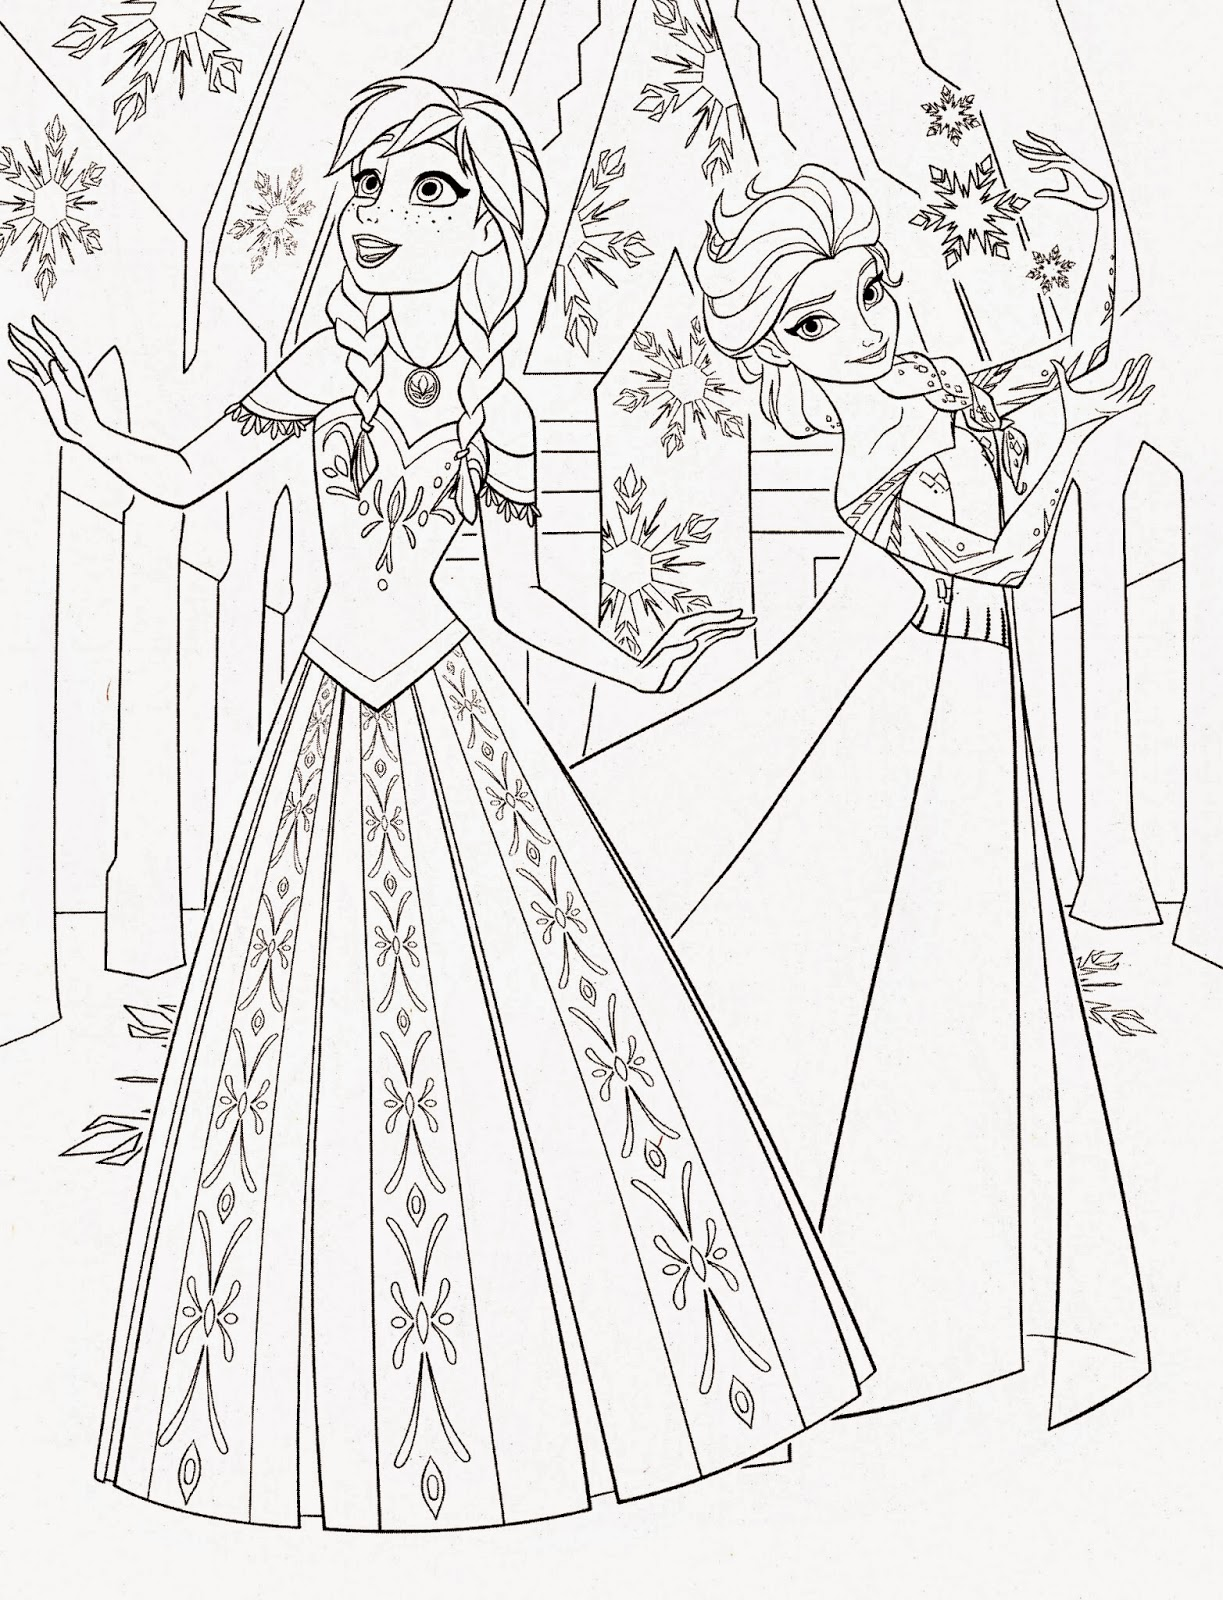 14 Wall Disney Princess Coloring Pages Printable Frozen Princess Coloring Page Free Coloring Sheets